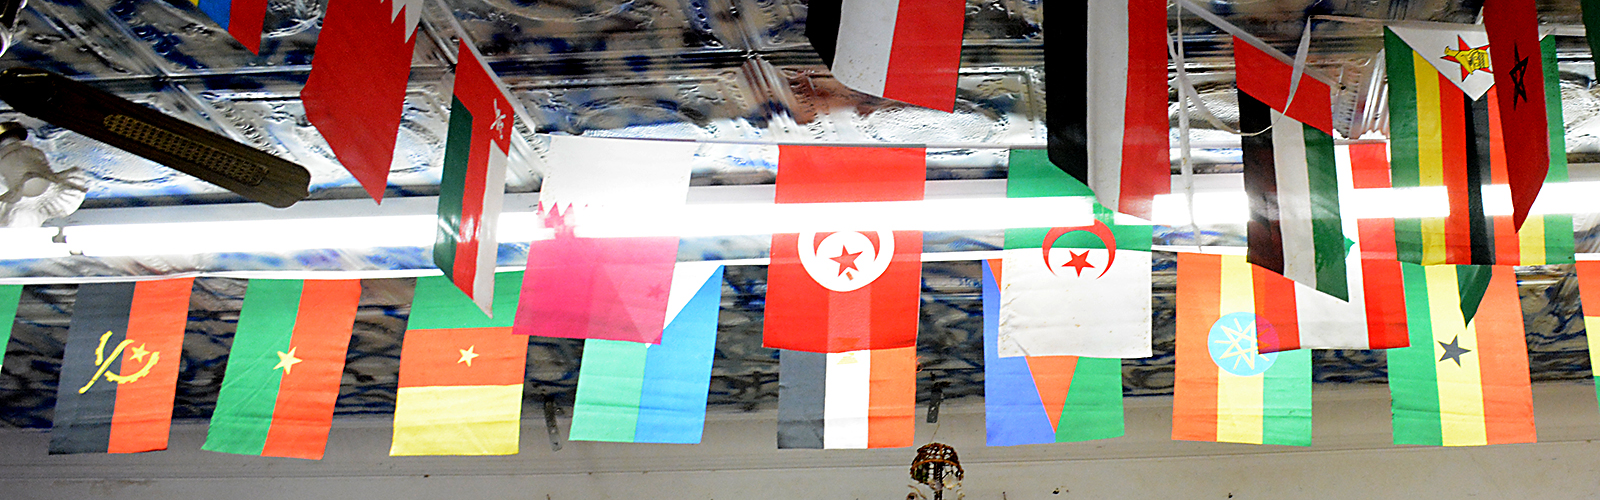 International flags displayed on the ceiling of Yasin Market.